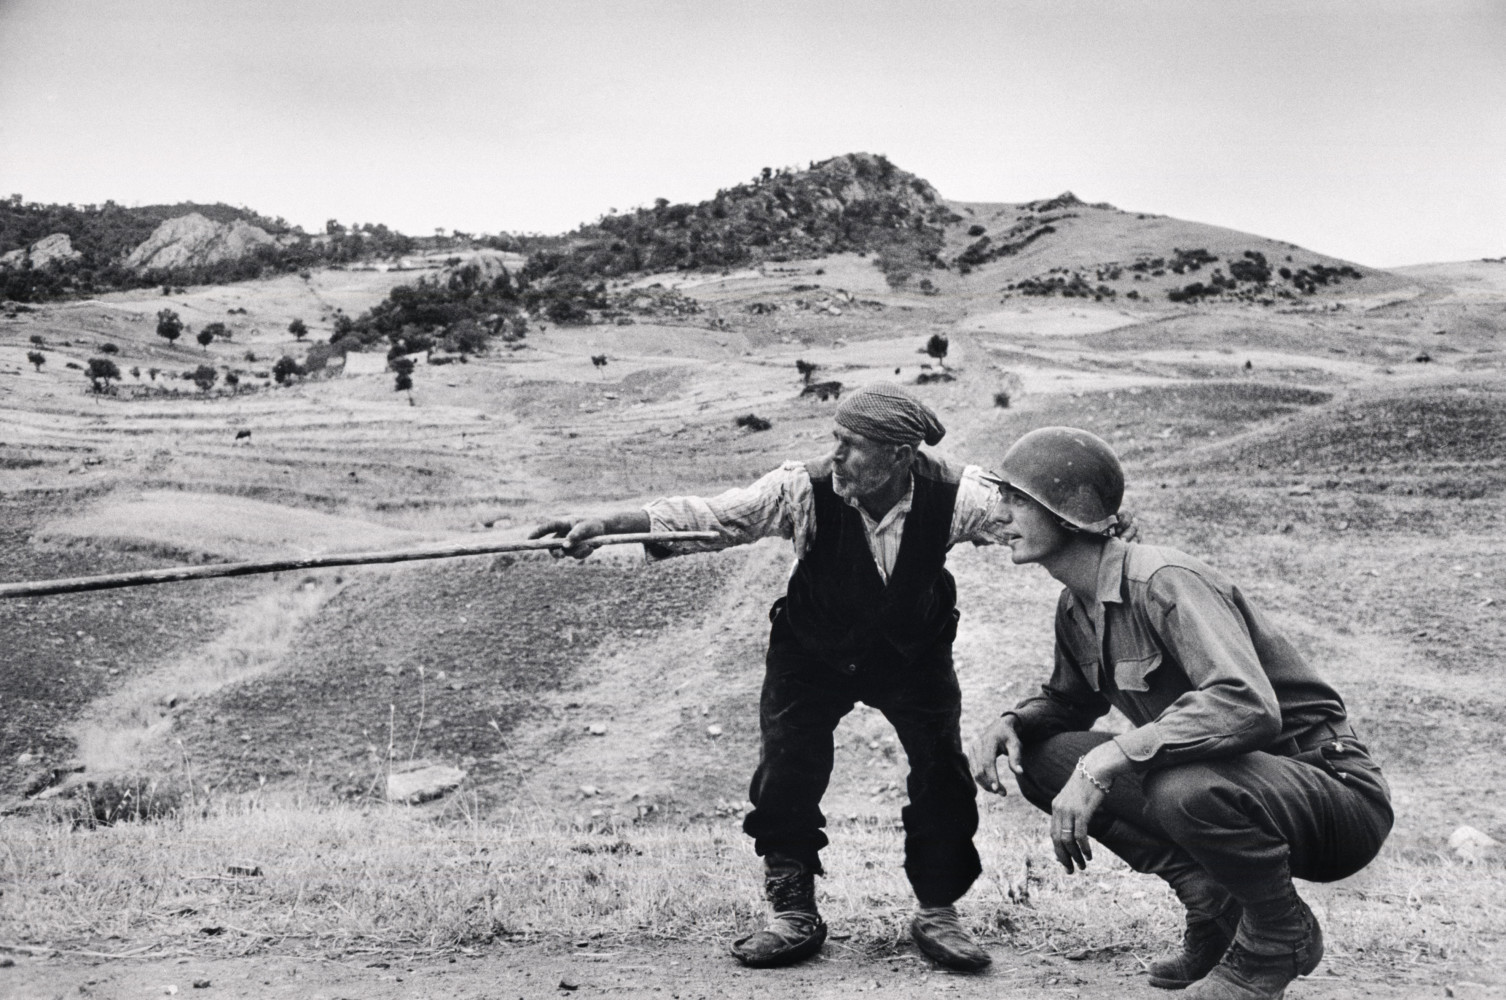 The 75th Anniversary of Operation Husky: the Allied Invasion of Sicily • Robert Capa